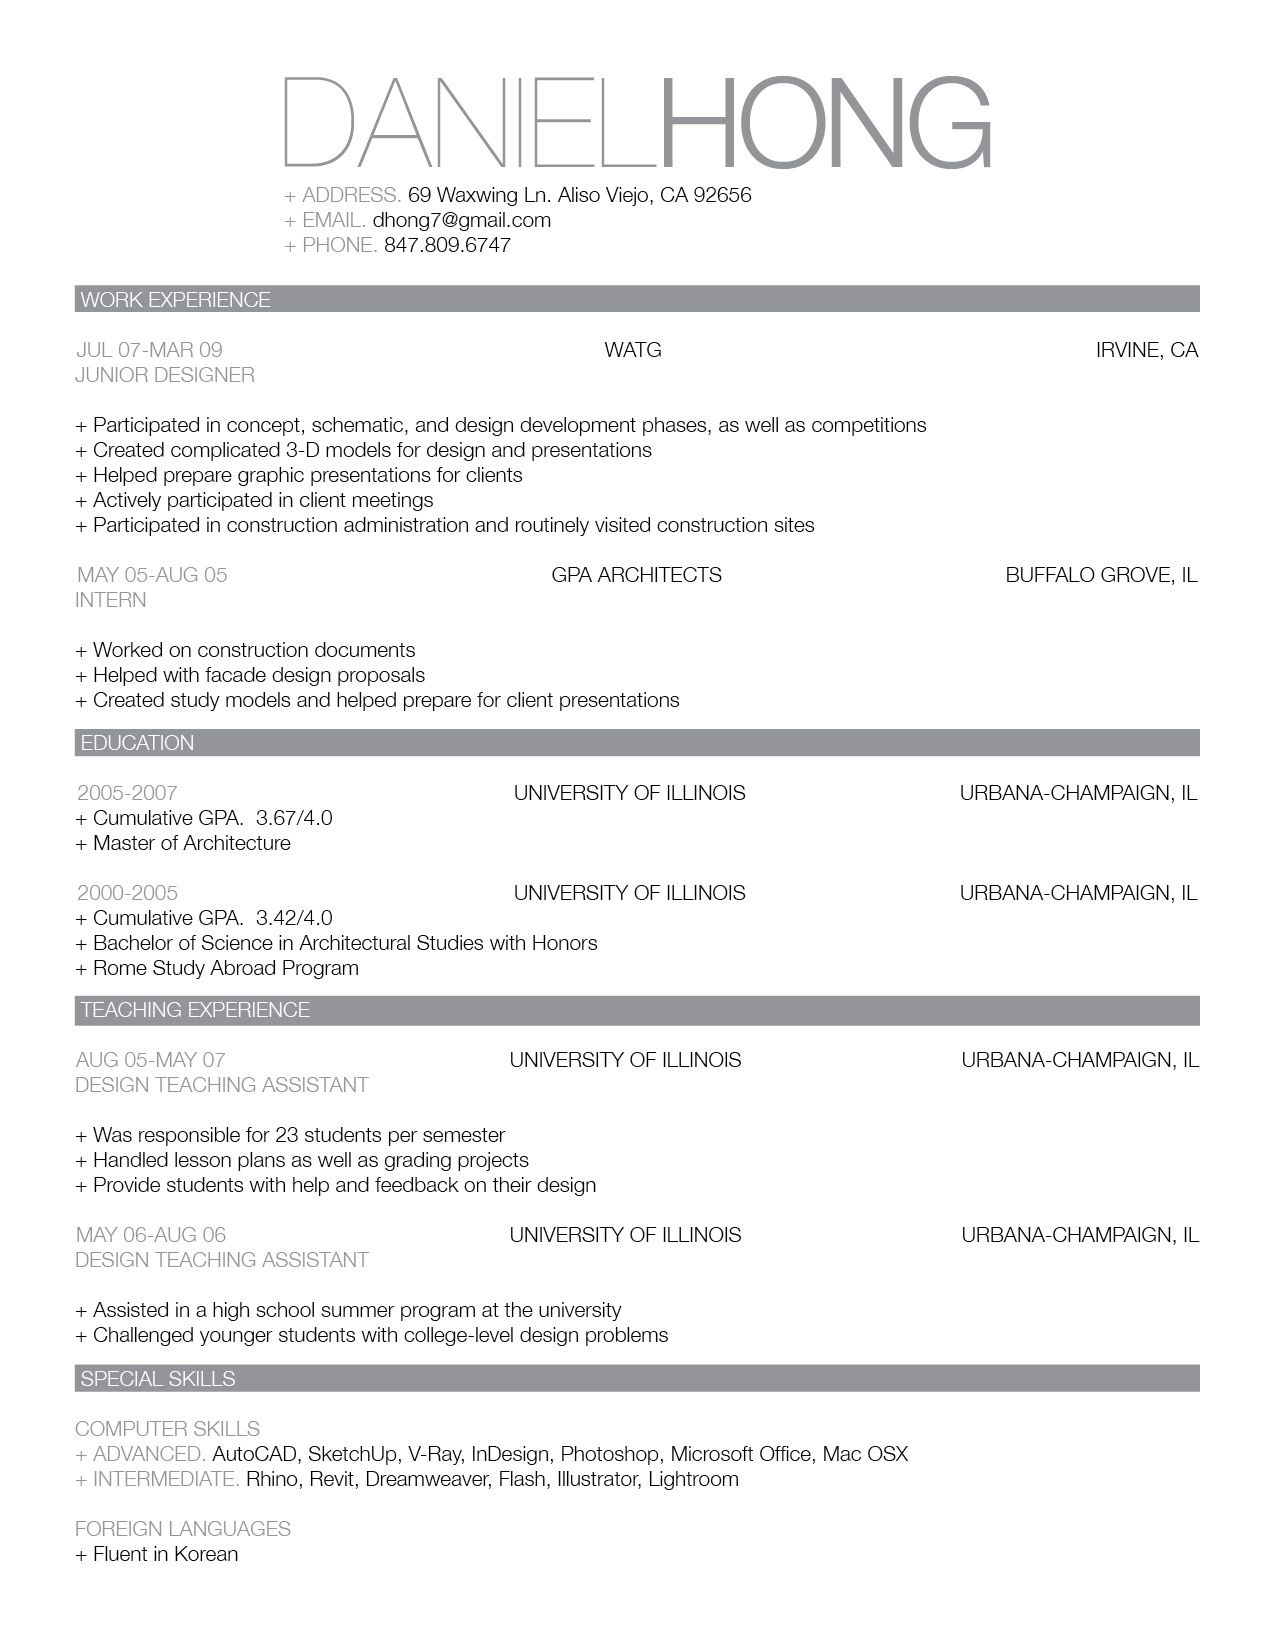 Layout Of Resume Updated Cv And Work Sample Creative Cvs Pinterest